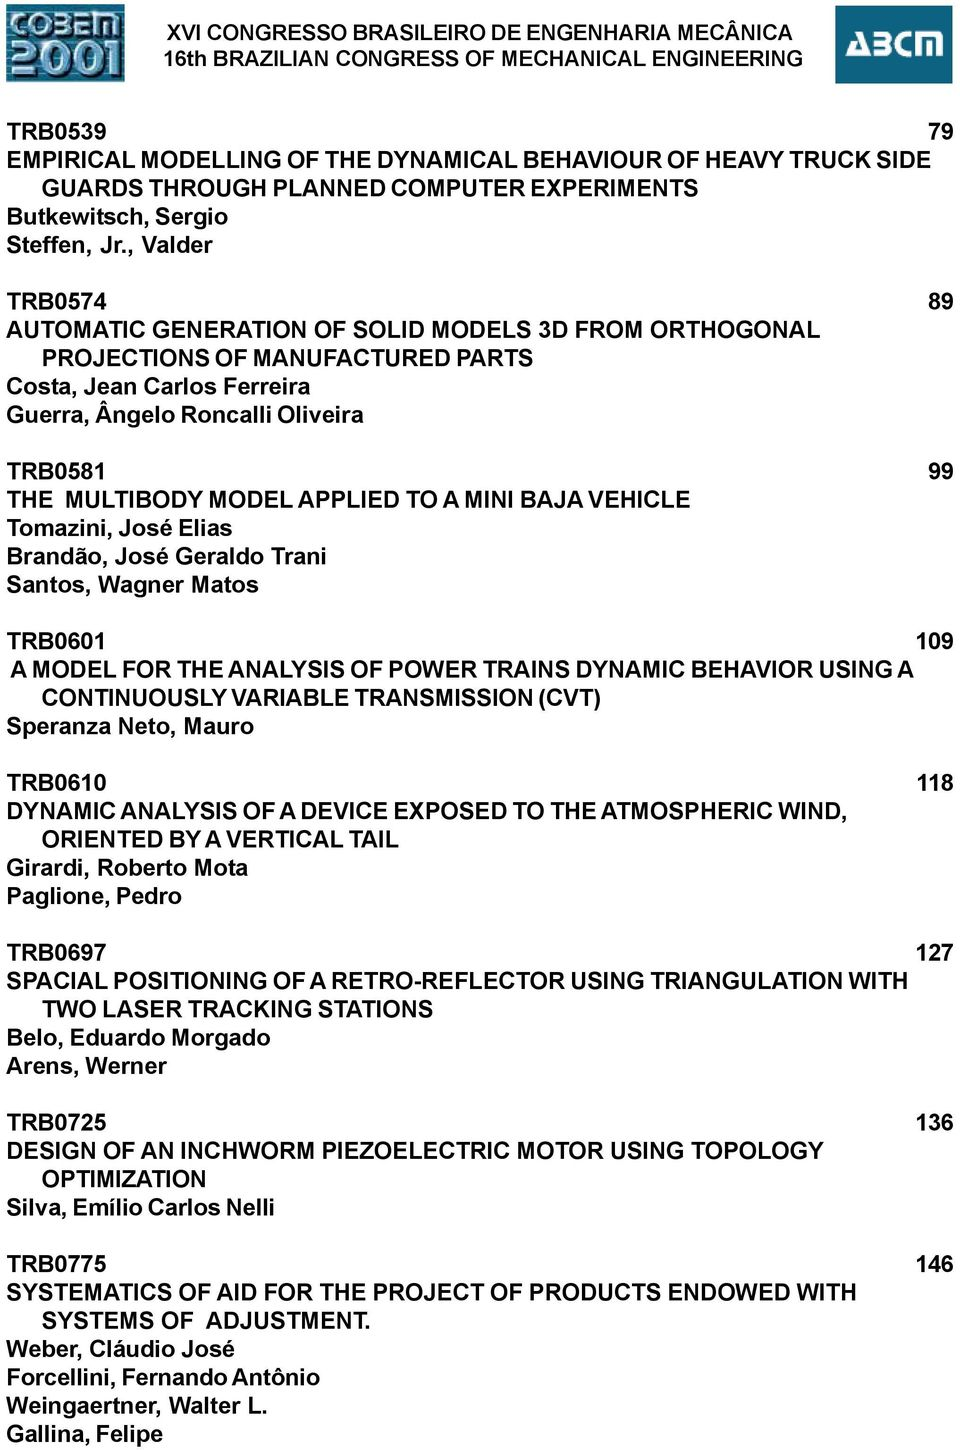 , Valder TRB574 89 AUTOMATIC GENERATION OF SOLID MODELS 3D FROM ORTHOGONAL PROJECTIONS OF MANUFACTURED PARTS Costa, Jean Carlos Ferreira Guerra, Ângelo Roncalli Oliveira TRB581 99 THE MULTIBODY MODEL